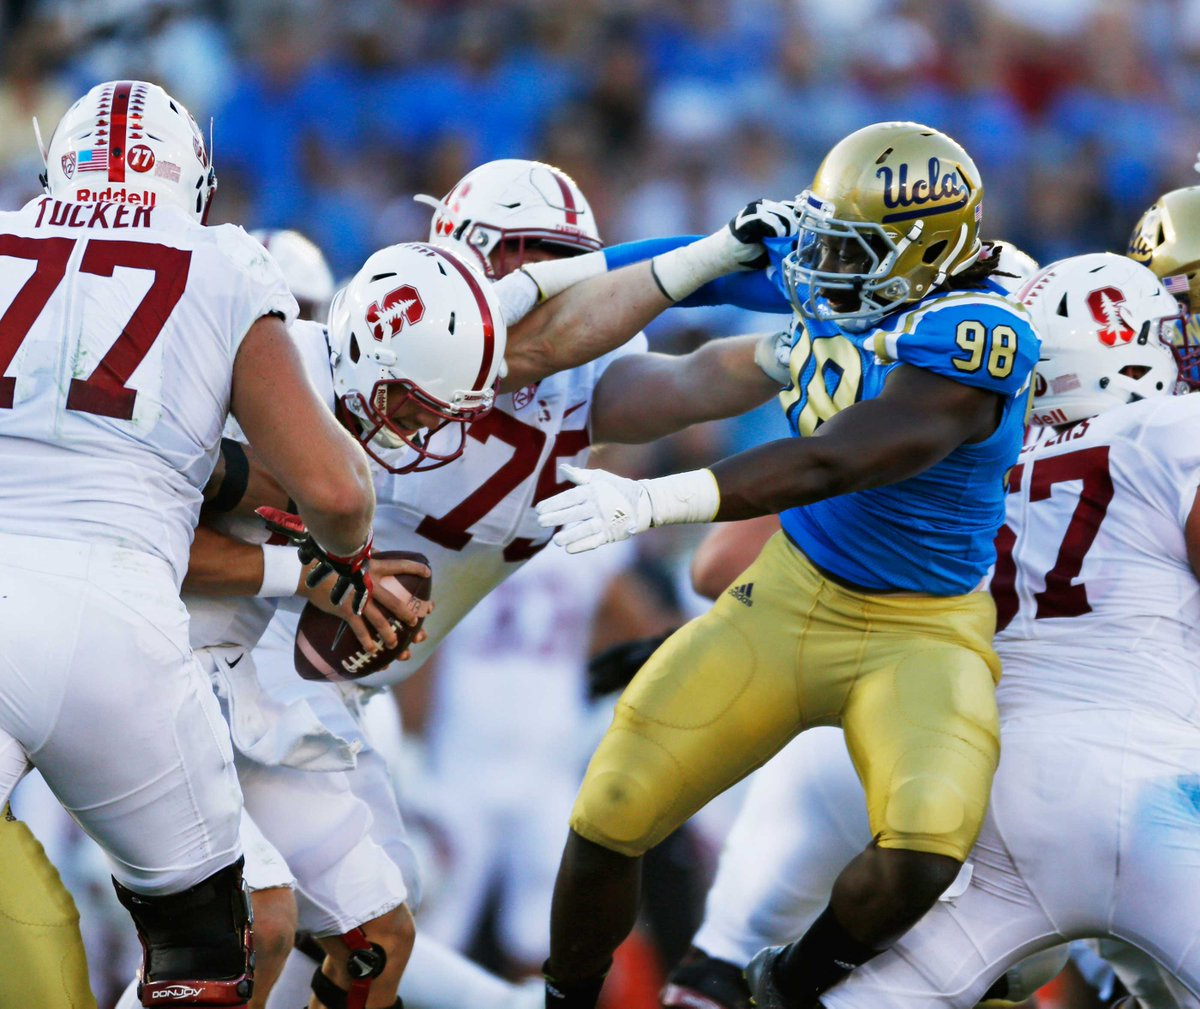 Stanford recovers fumble on last play to beat UCLA, 22-13